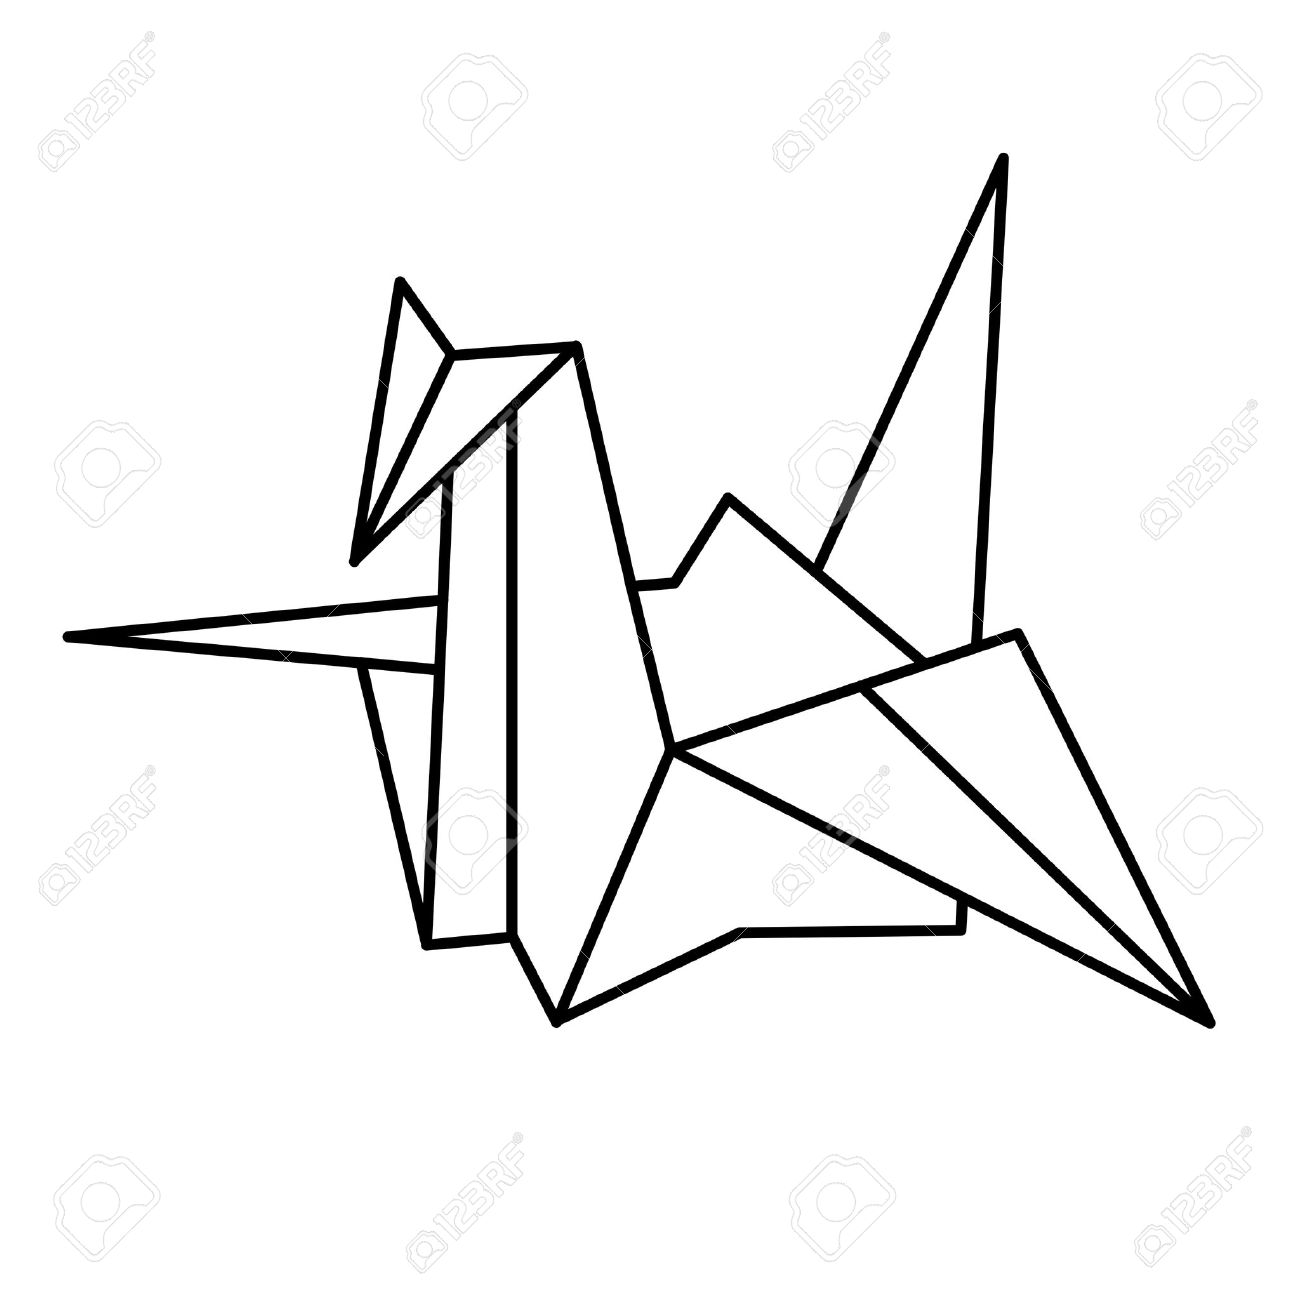 origami crane drawing at getdrawings com